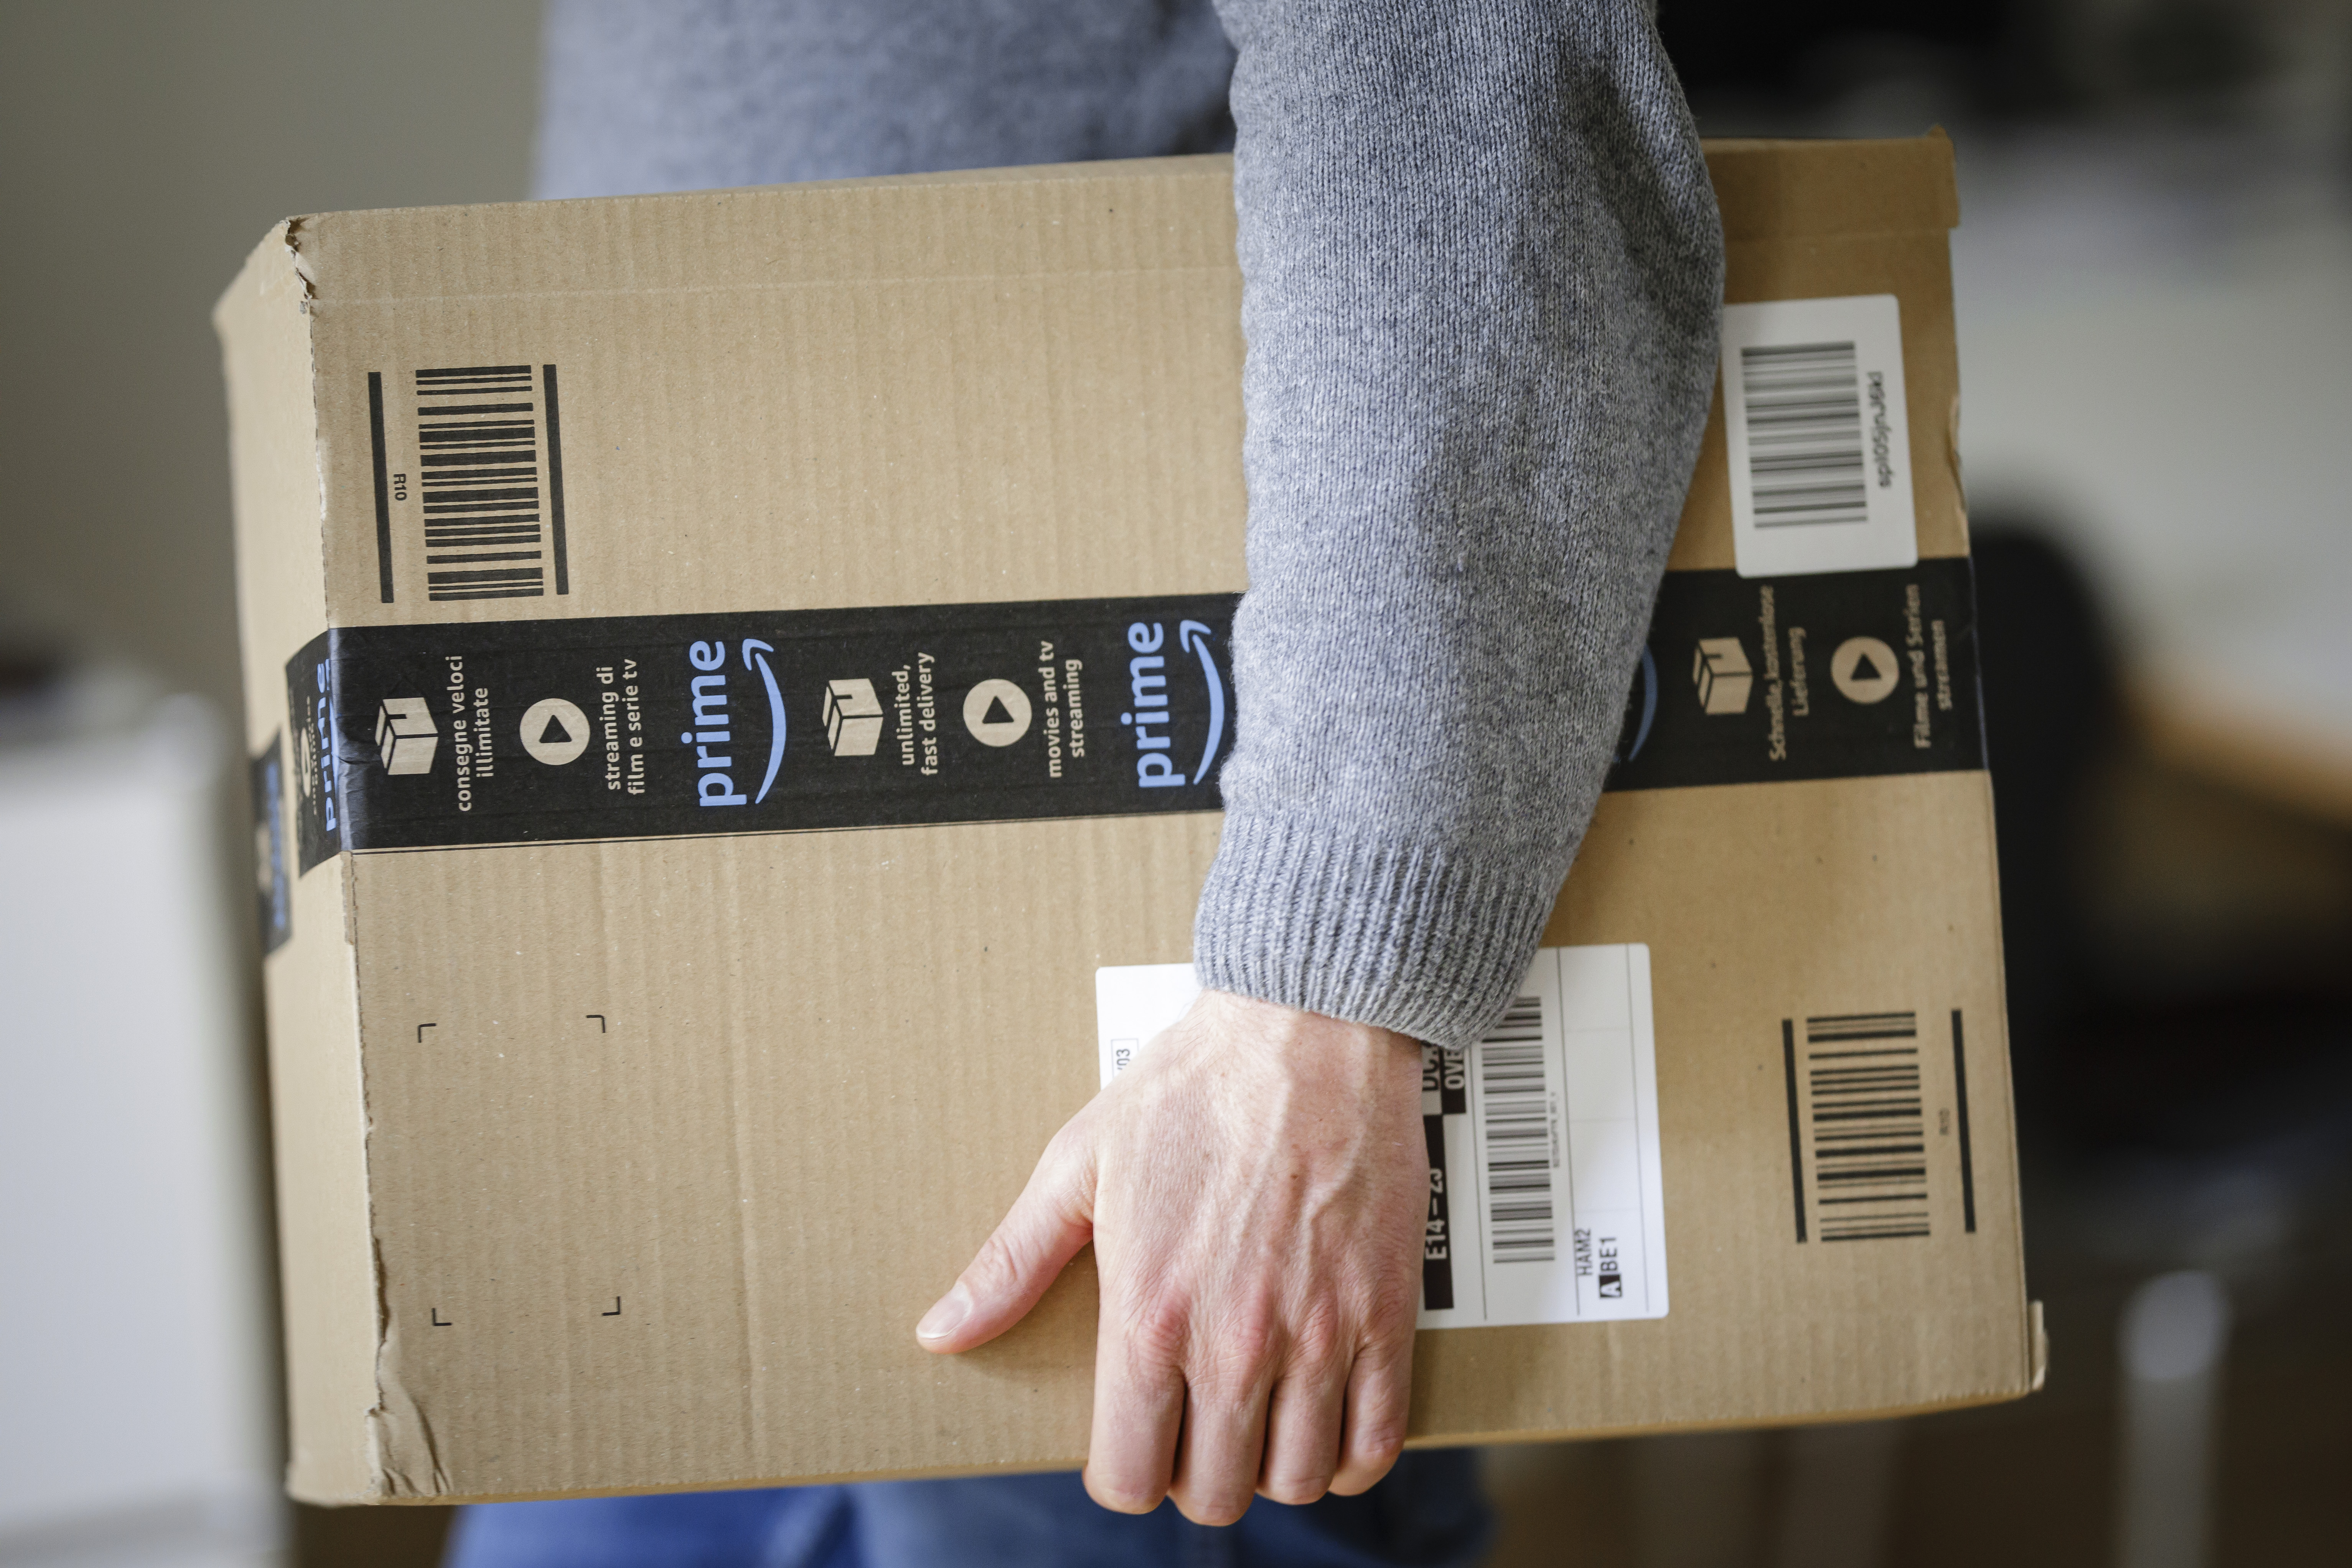 A person carries an Amazon Prime-branded package under their arm.